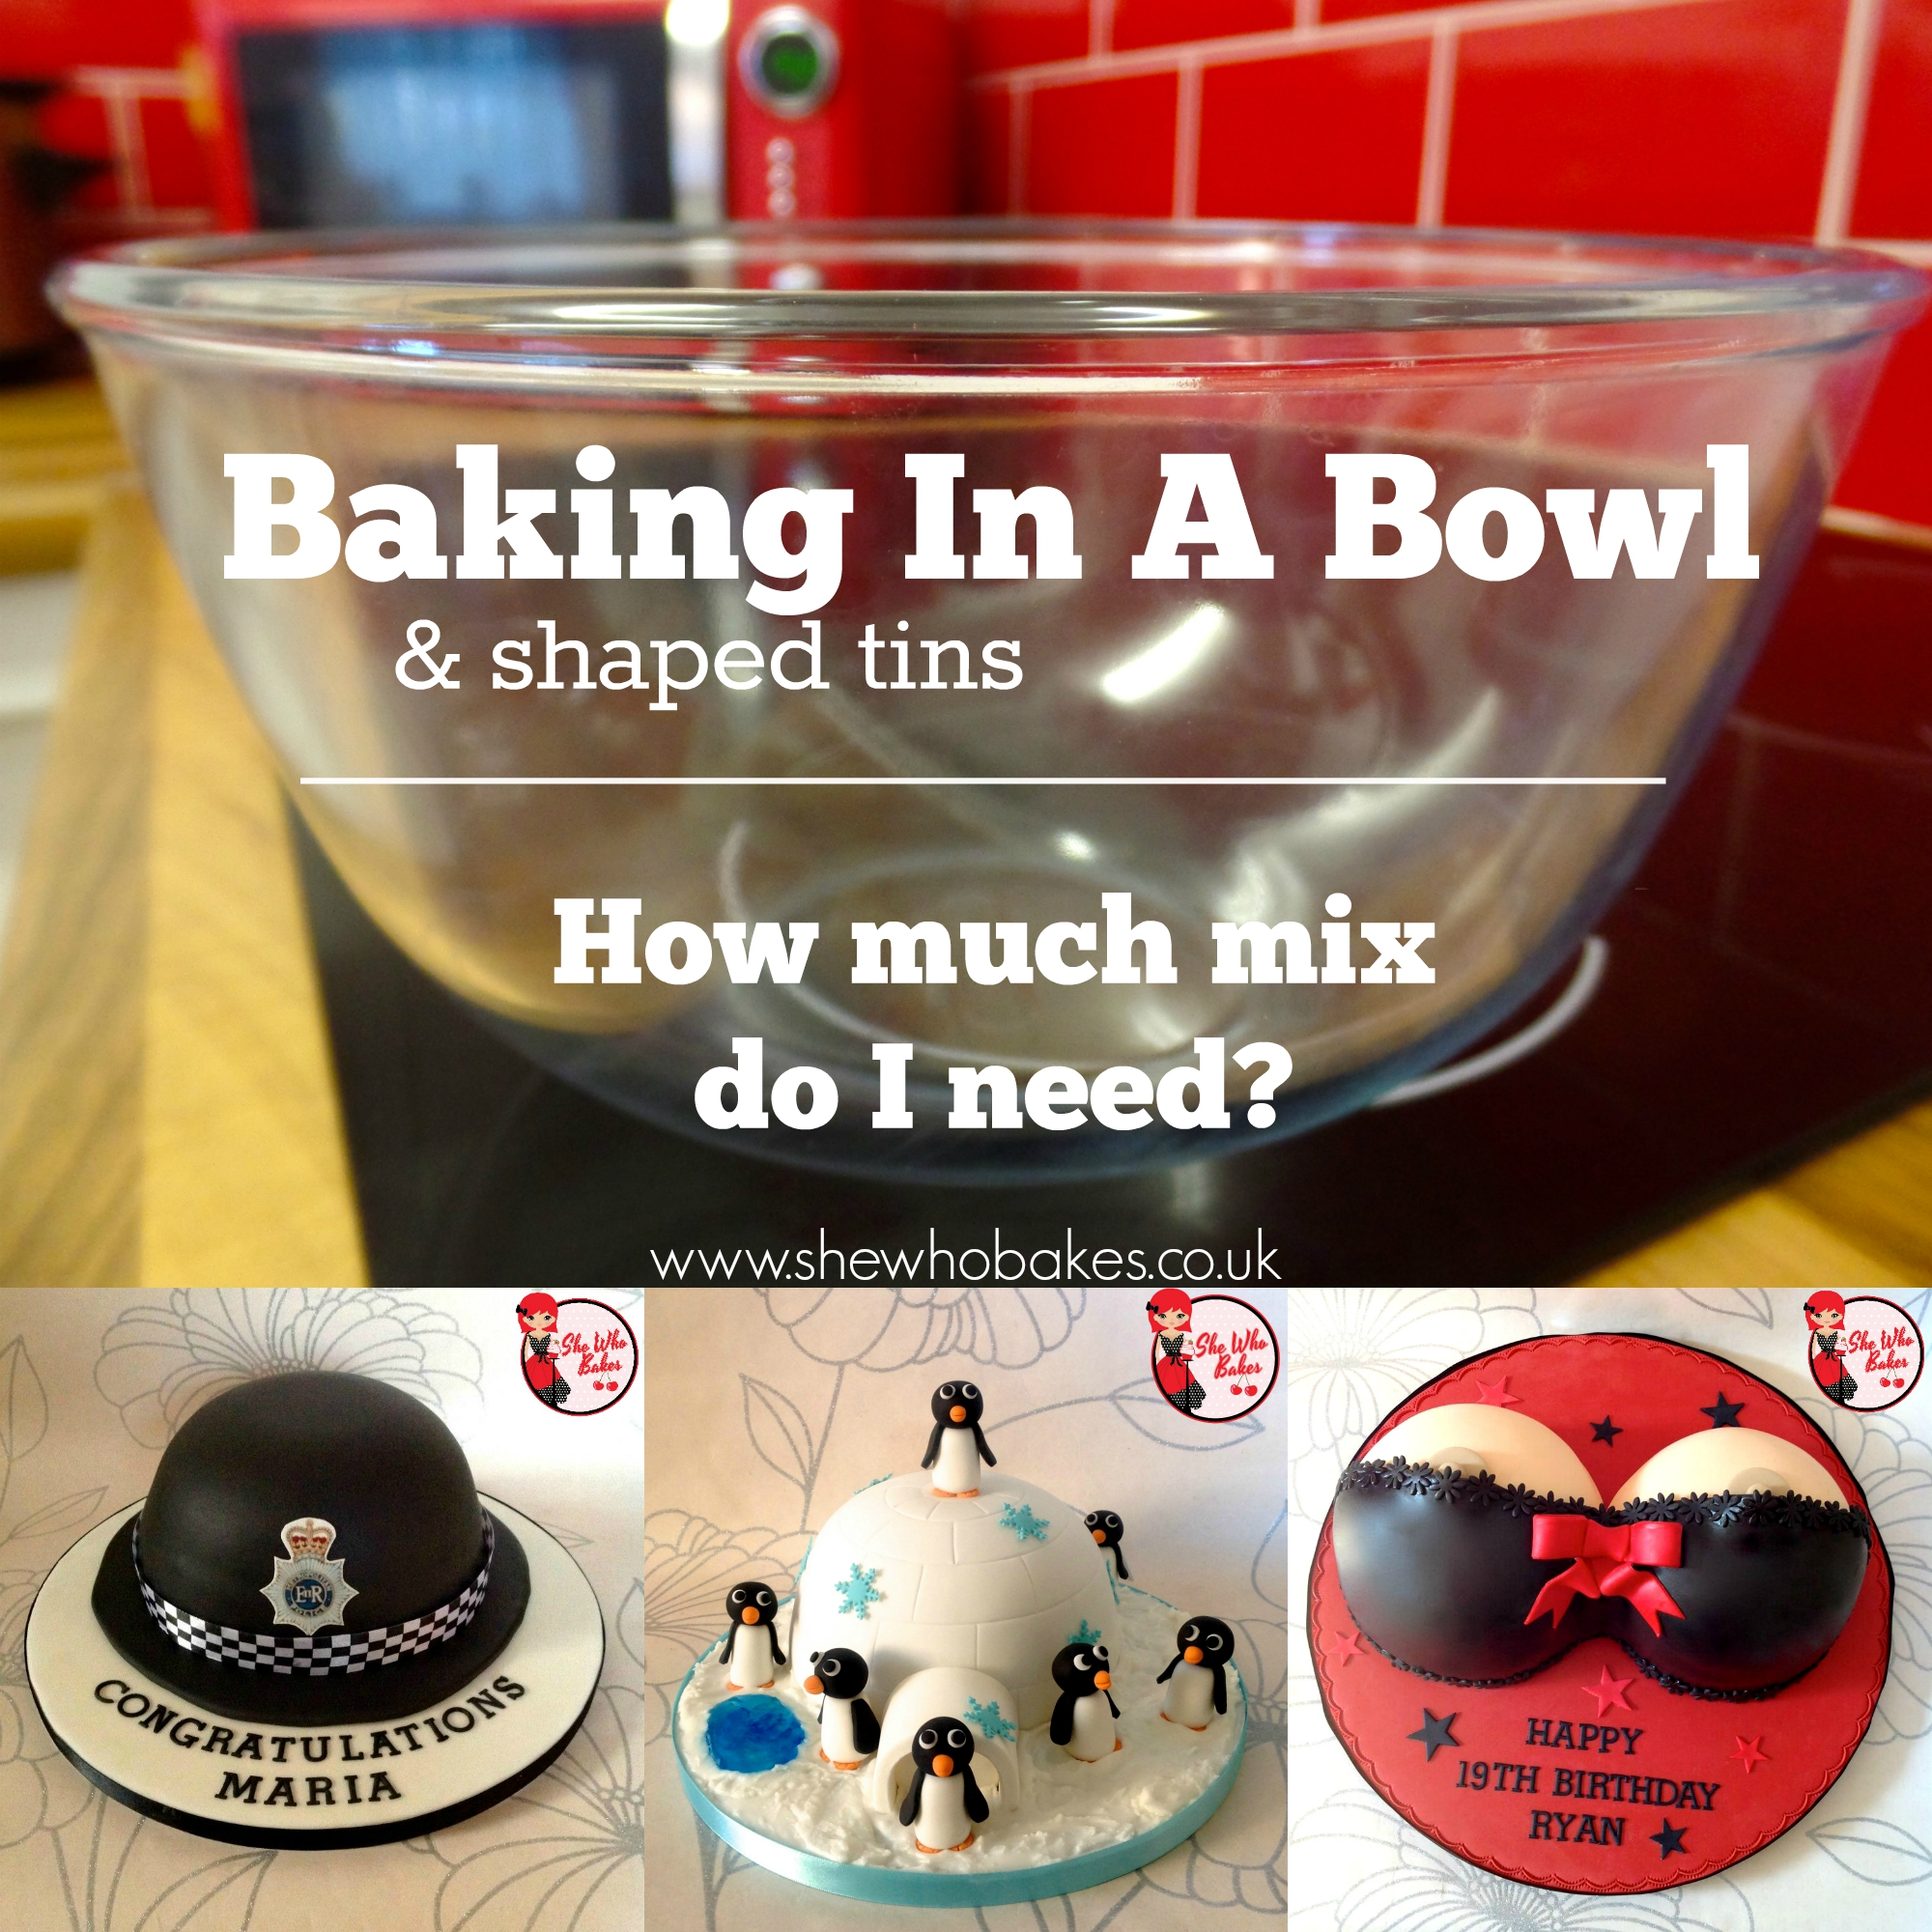 Cake Baking In Pyrex Bowl